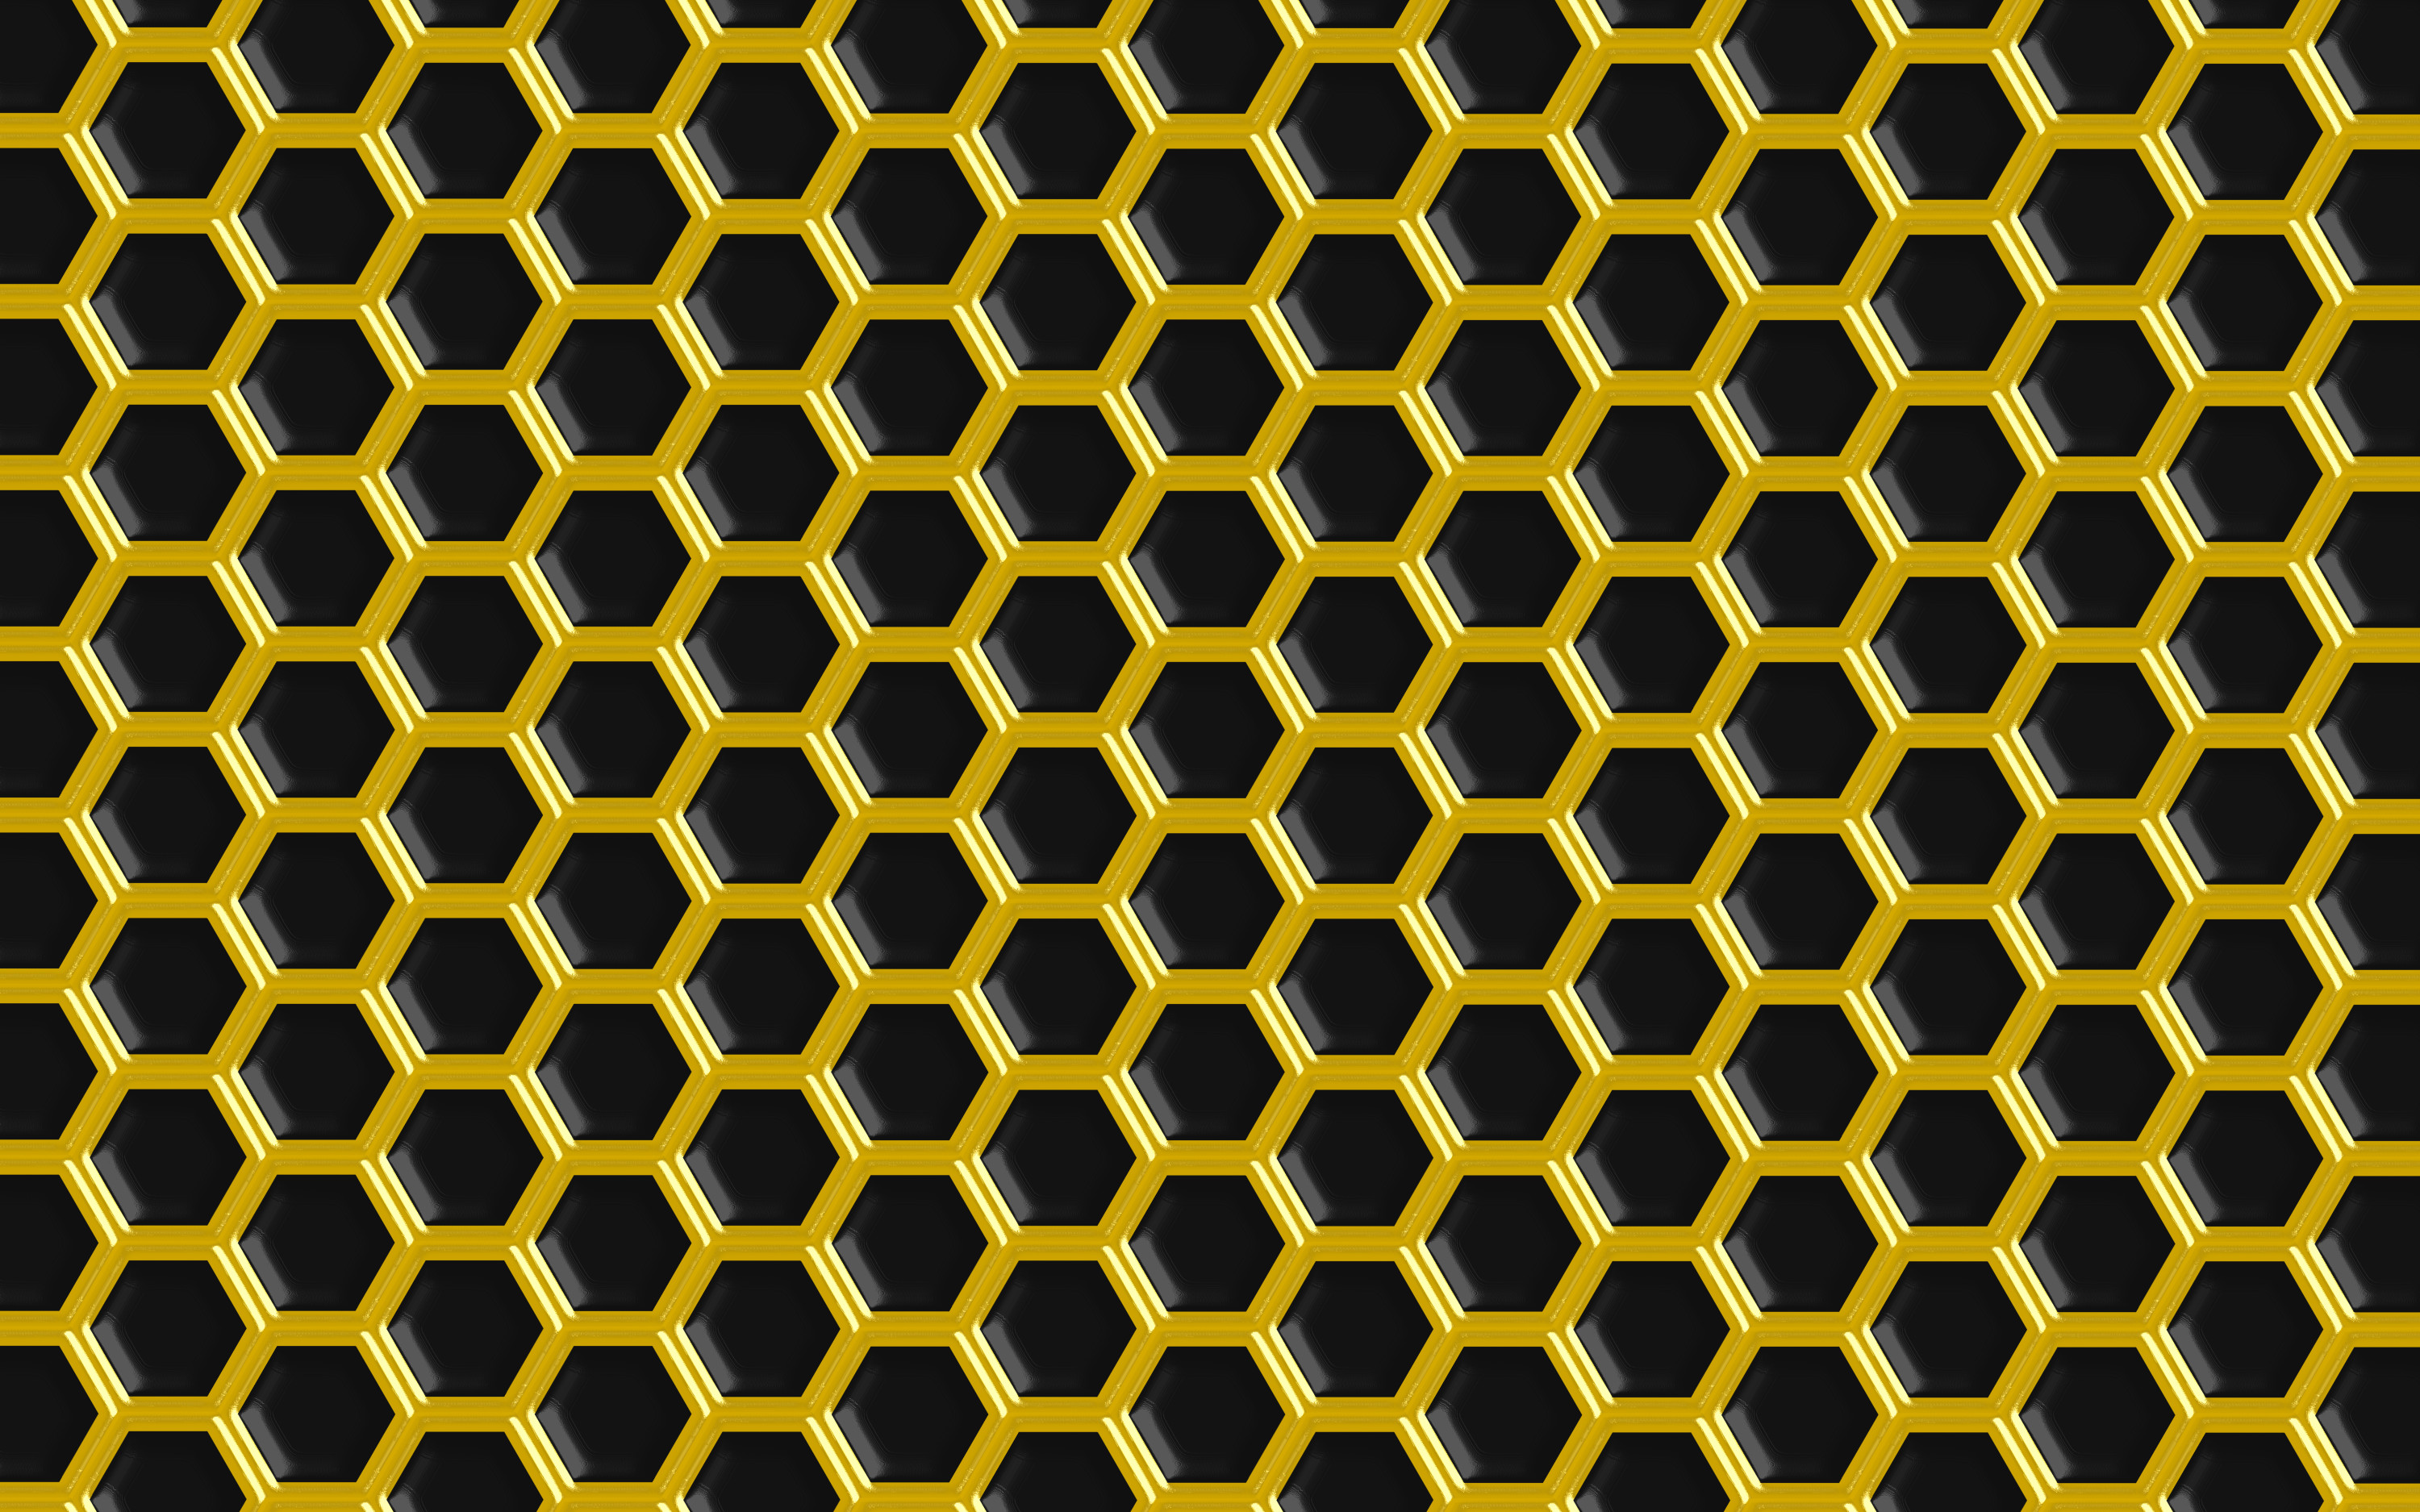 3000x1875 ... Black Gold Hex Background px by l4k3